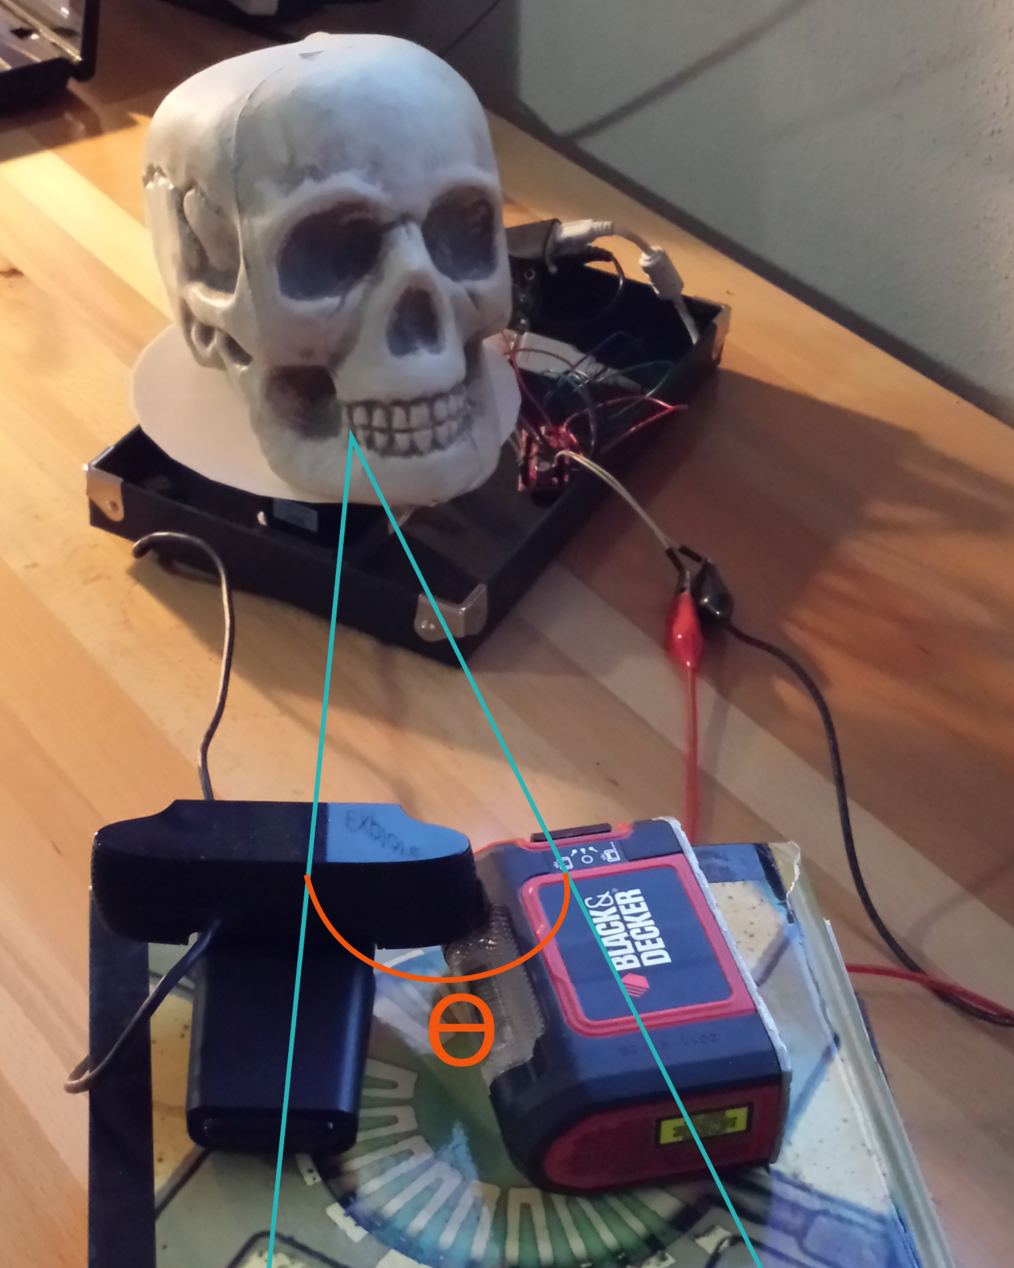 The arrangement of hardware components. The embedded linux device, stepper motor driver, and stepper motor are placed in an upside-down box lid, and the camera/laser are resting on a stack of textbooks. Choose a camera/laser height which allows the laser to best fill the cavities of the device being scanned. Ө (Theta) defines the angle between the center of the camera's field of vision and the plane of the laser.